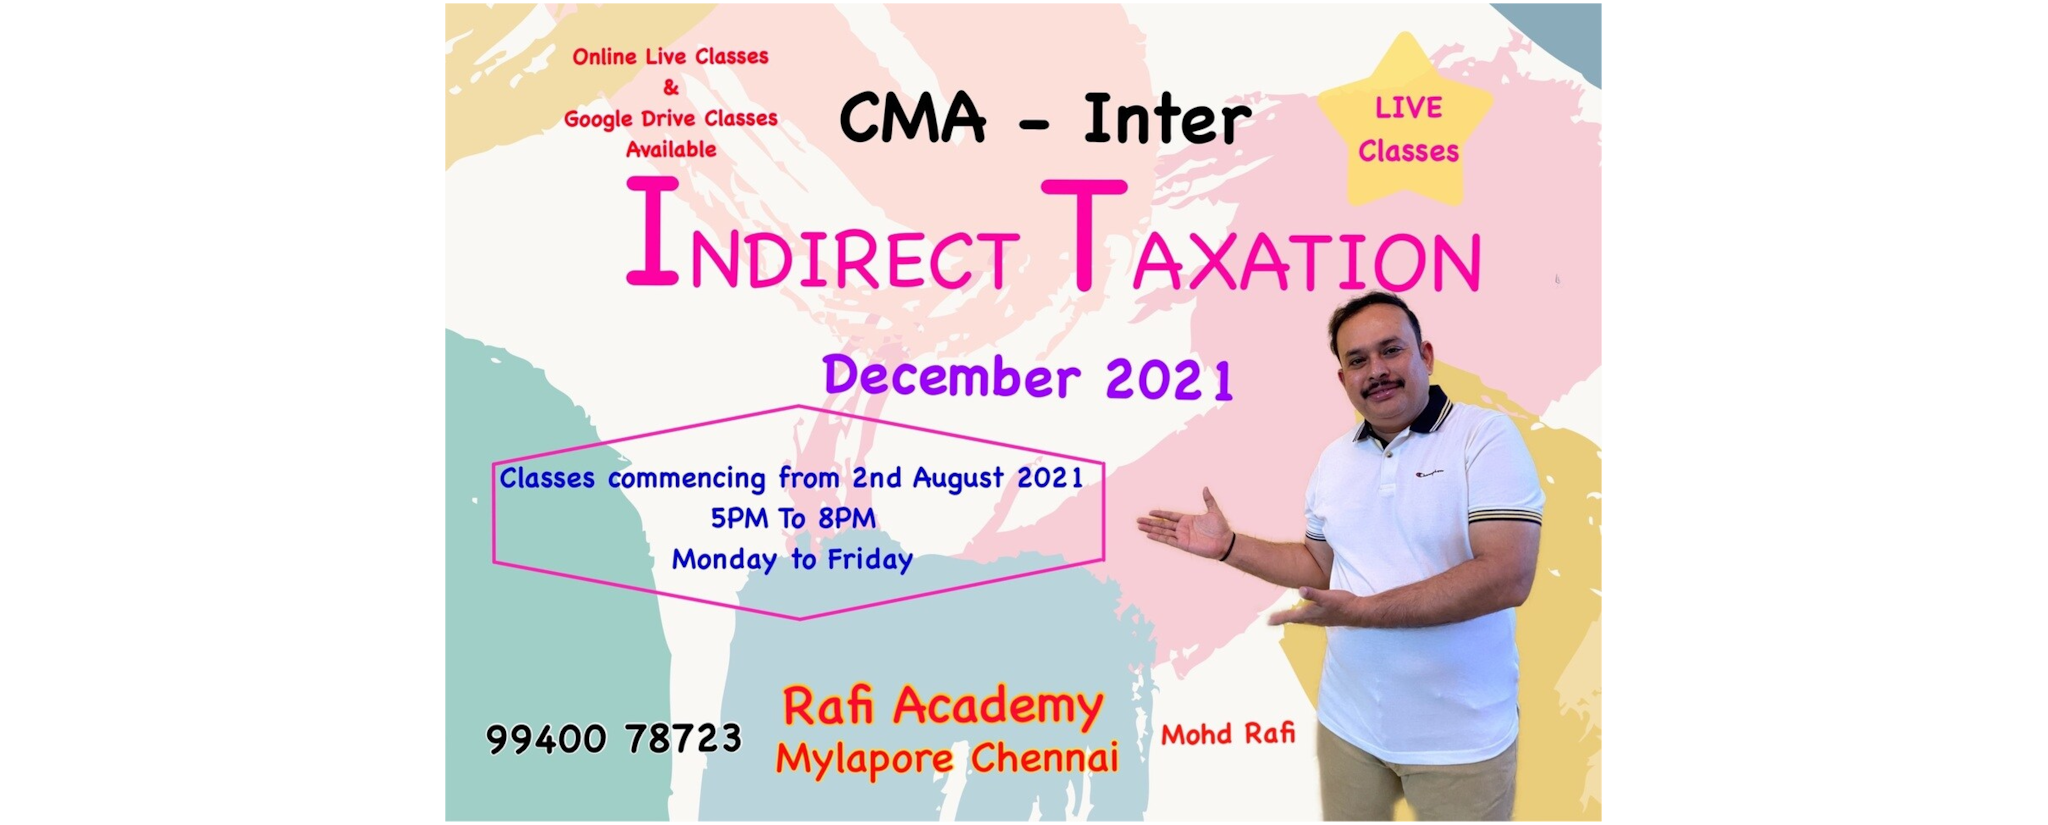 Rafi Academy - CA Coaching Classes and Tutorial Services in Mylapore, Chennai